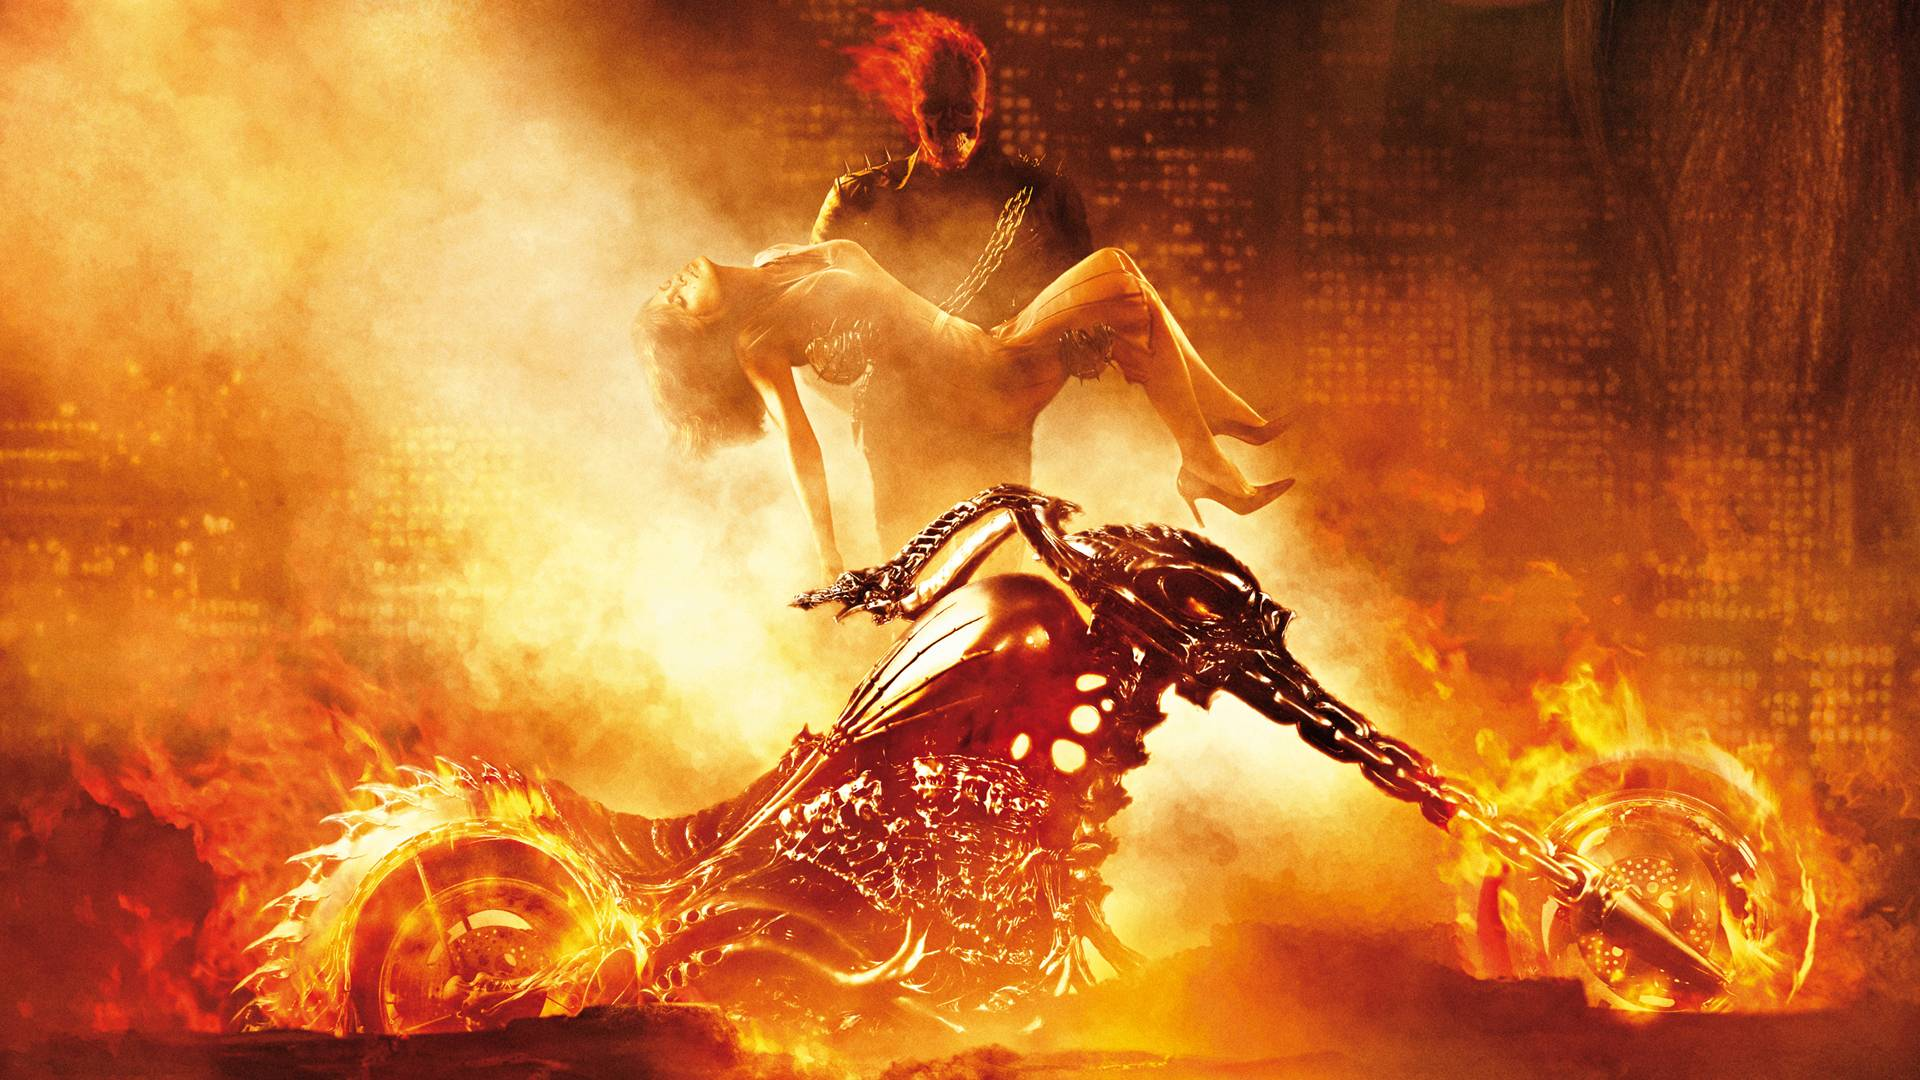 Ghost Rider HD Wallpapers 1920x1080